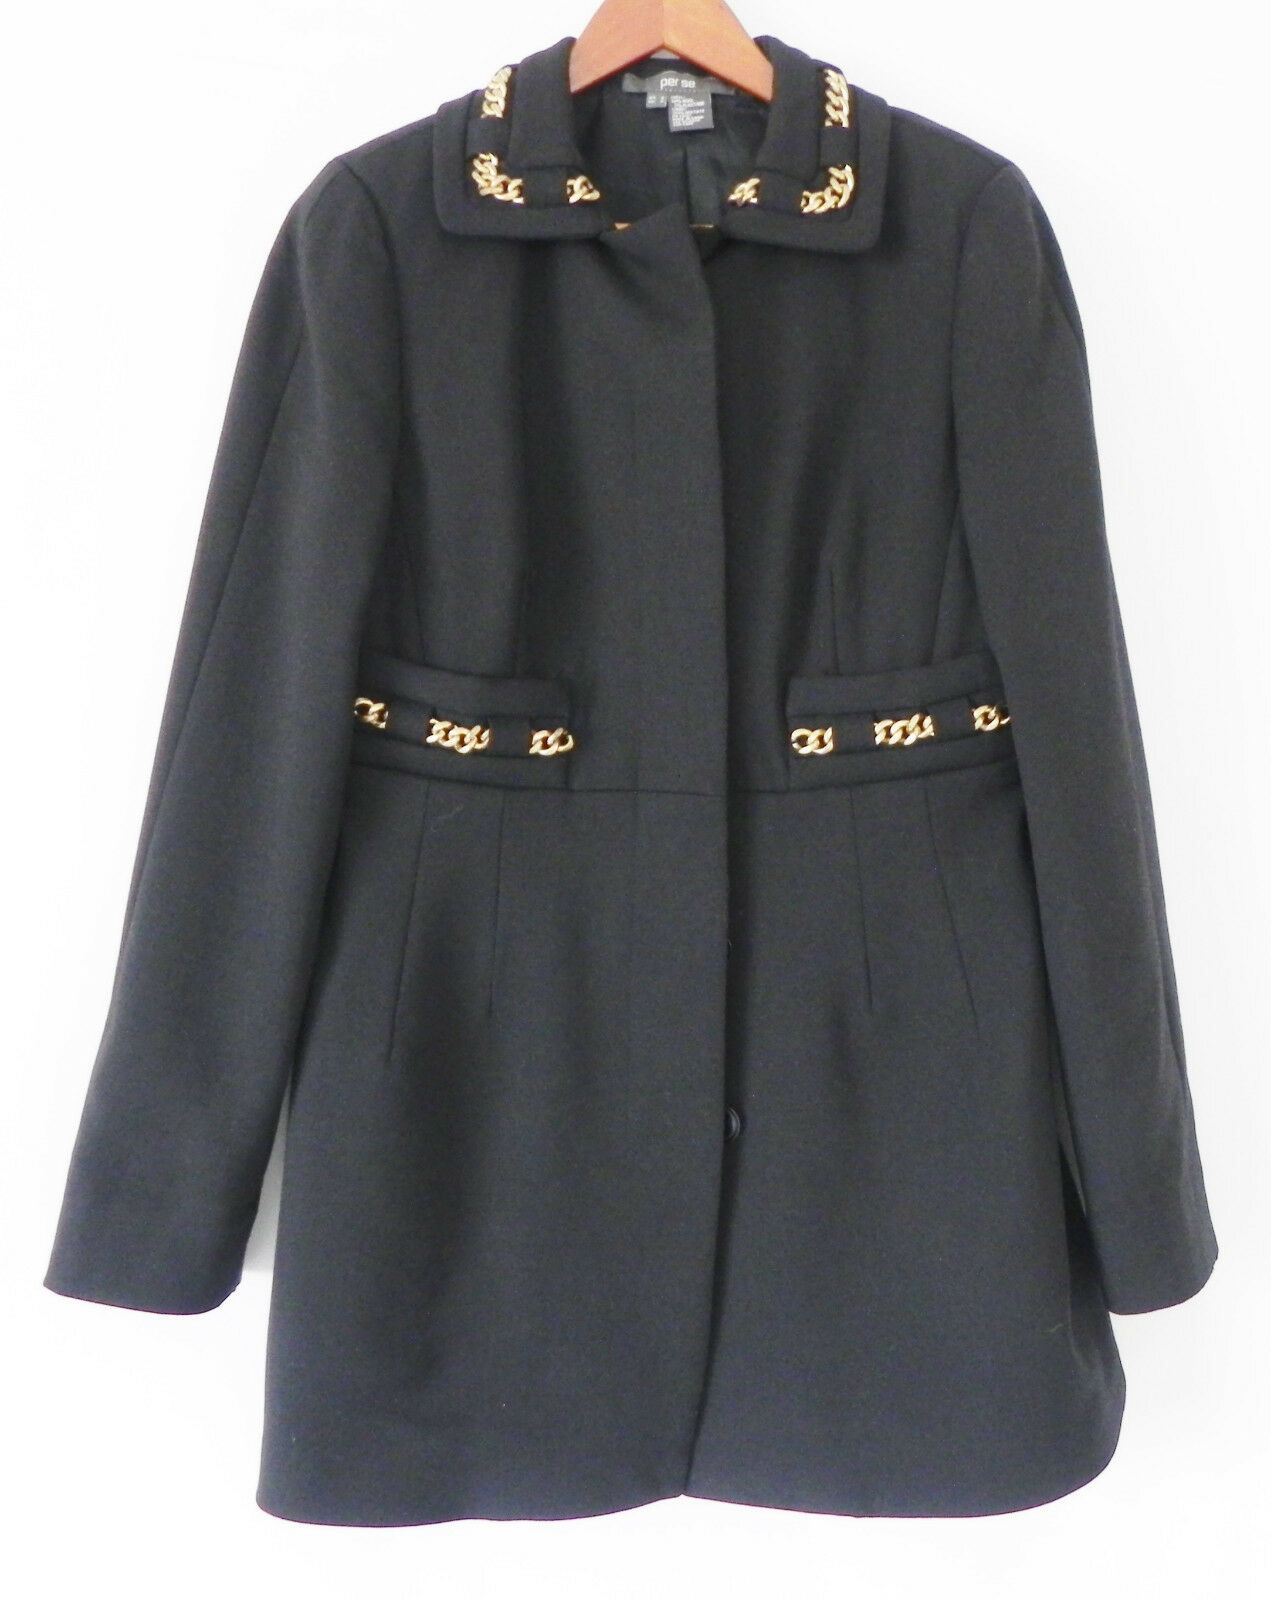 Perse Coat Navy bluee Wool  God Tone Chain Trim Slim Cut Size 6